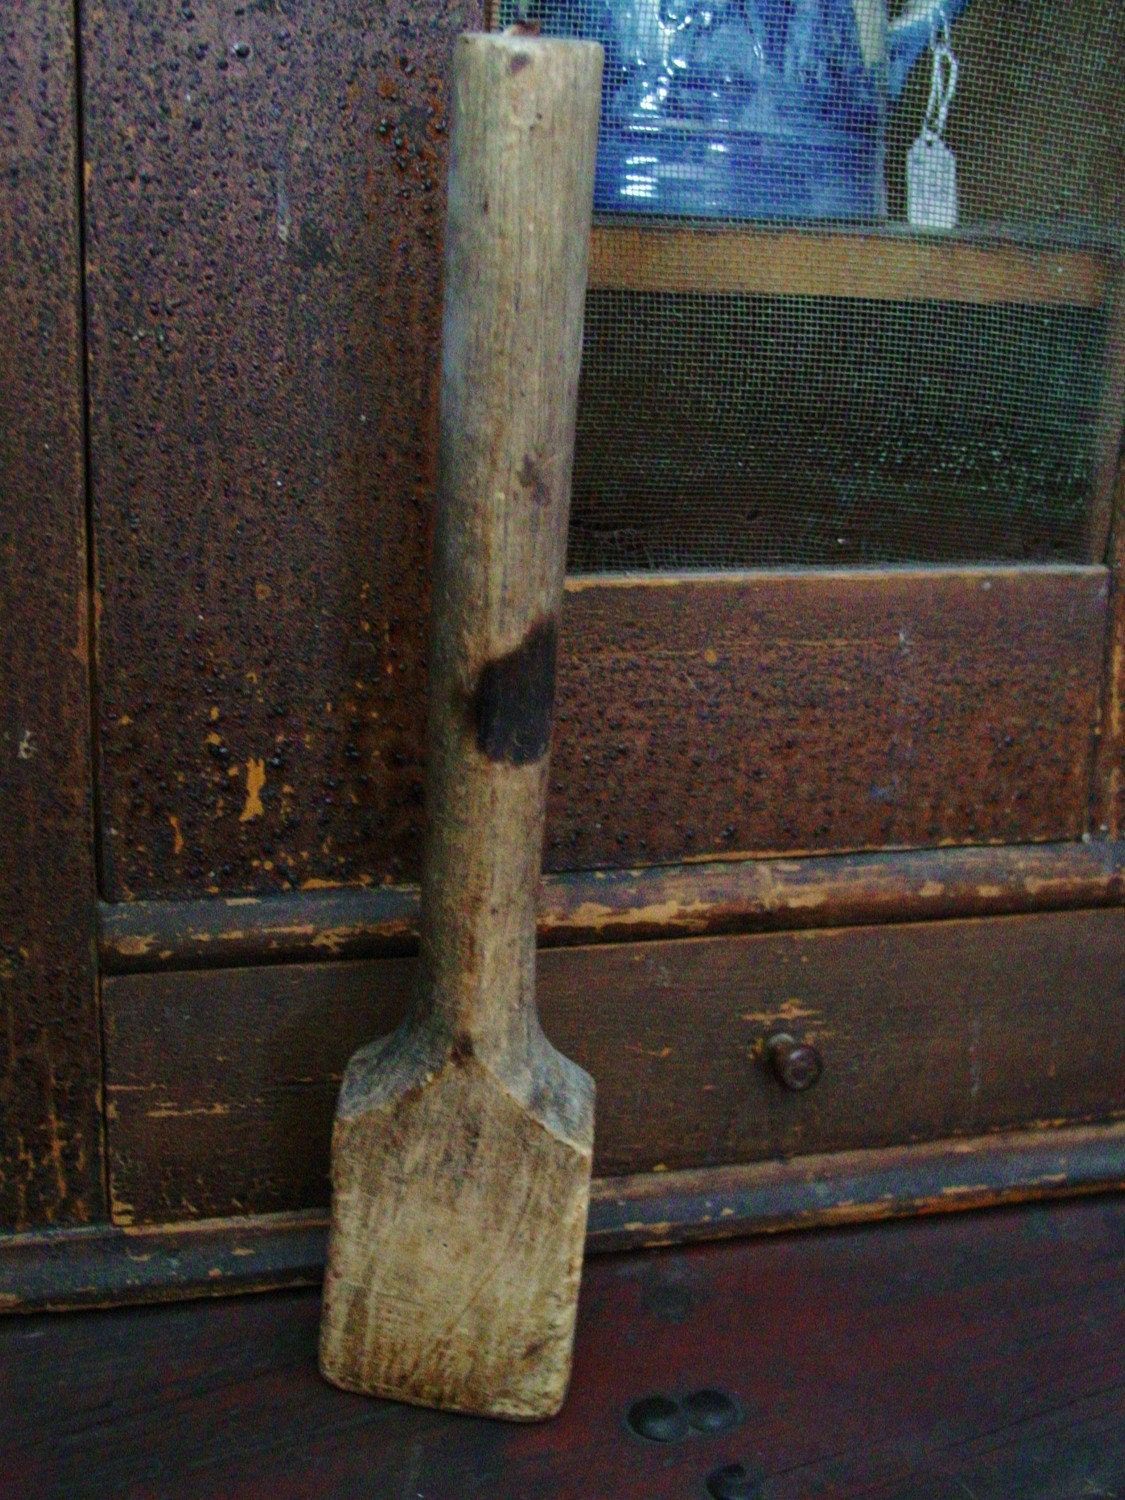 Handmade Primitive Wooden Hot Bath Sign Farmhouse Country: Early Primitive Kitchen Large Handmade Wood Wooden Masher